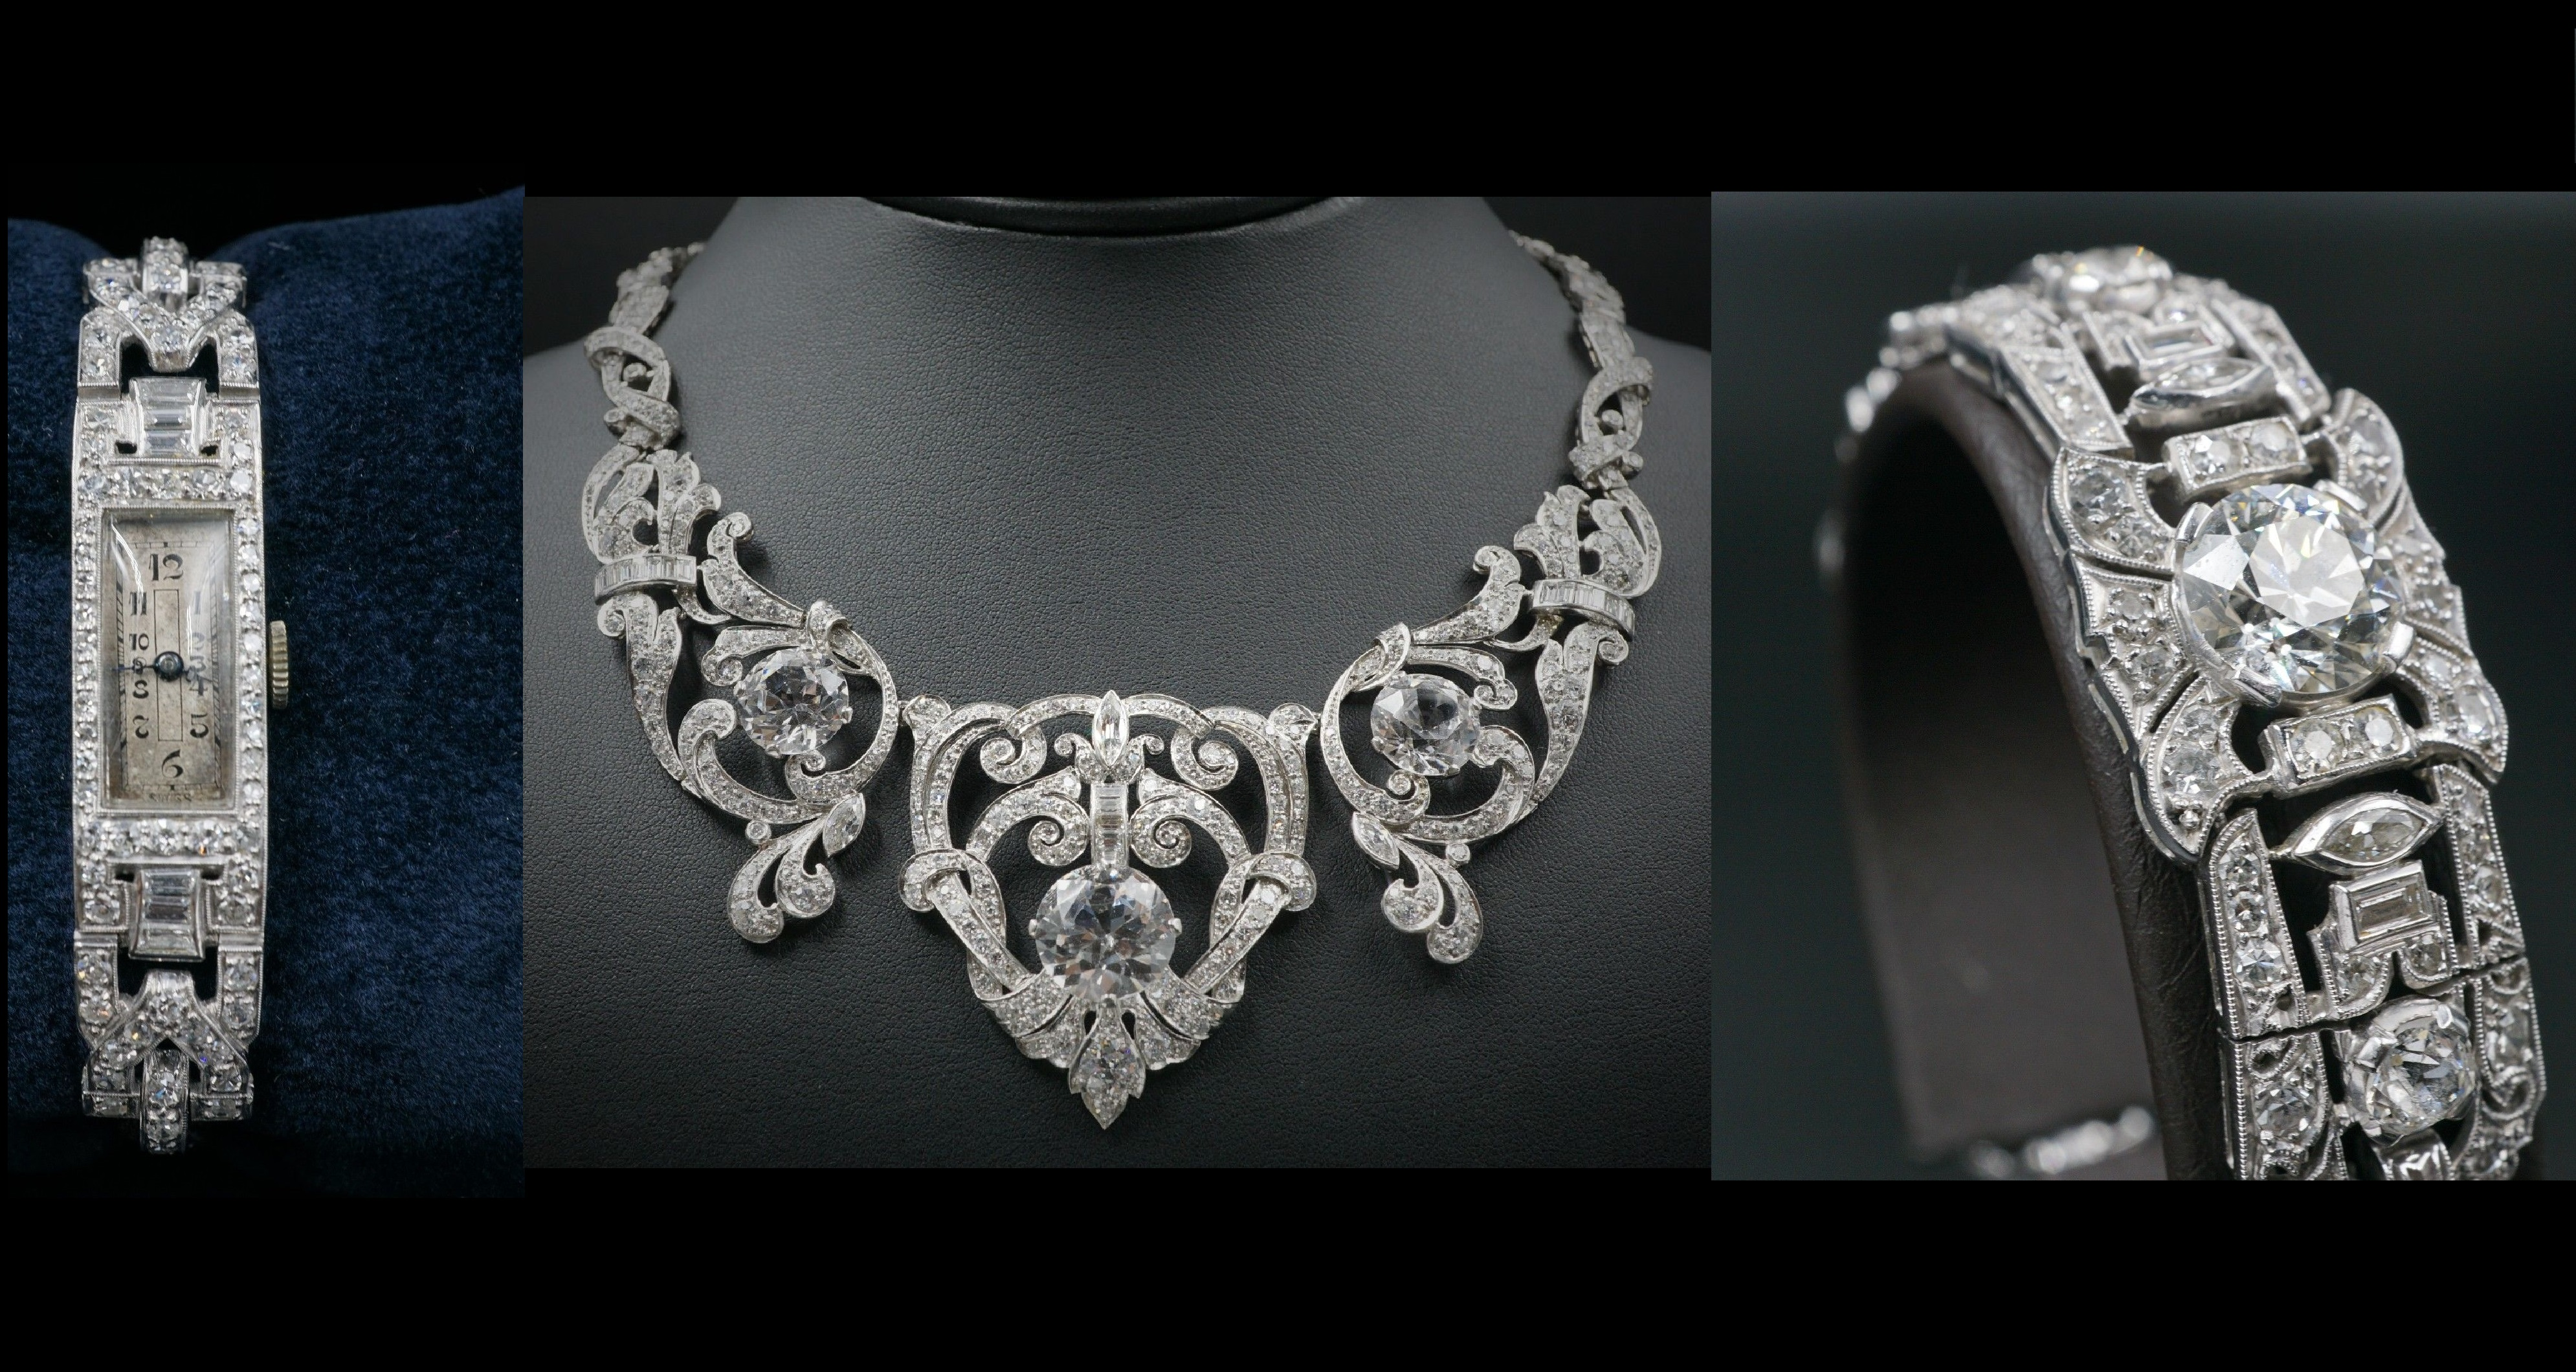 Mae West Owned Edwardian Platinum 23ct Diamond Necklace Bracelet Suite CO169